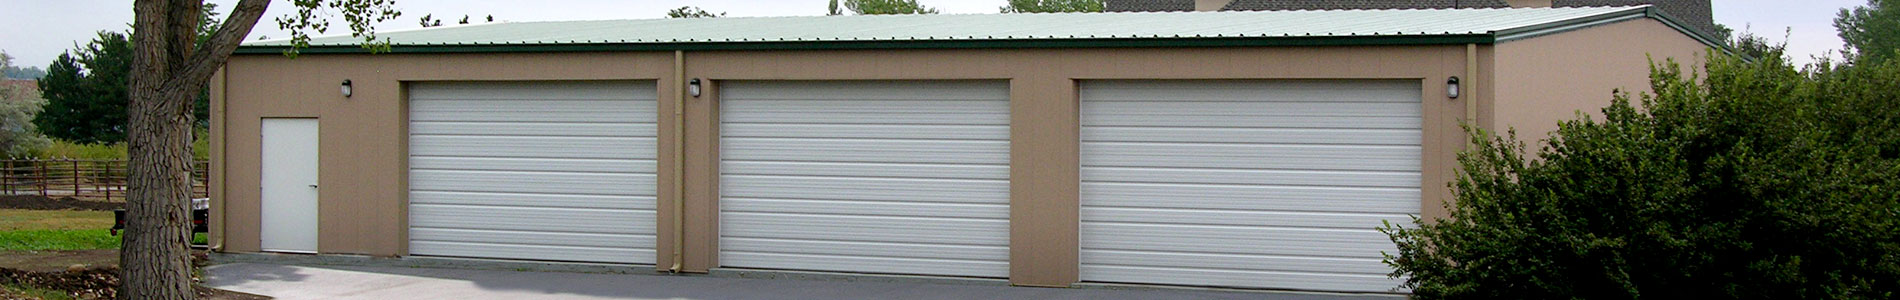 Garage Building Kit